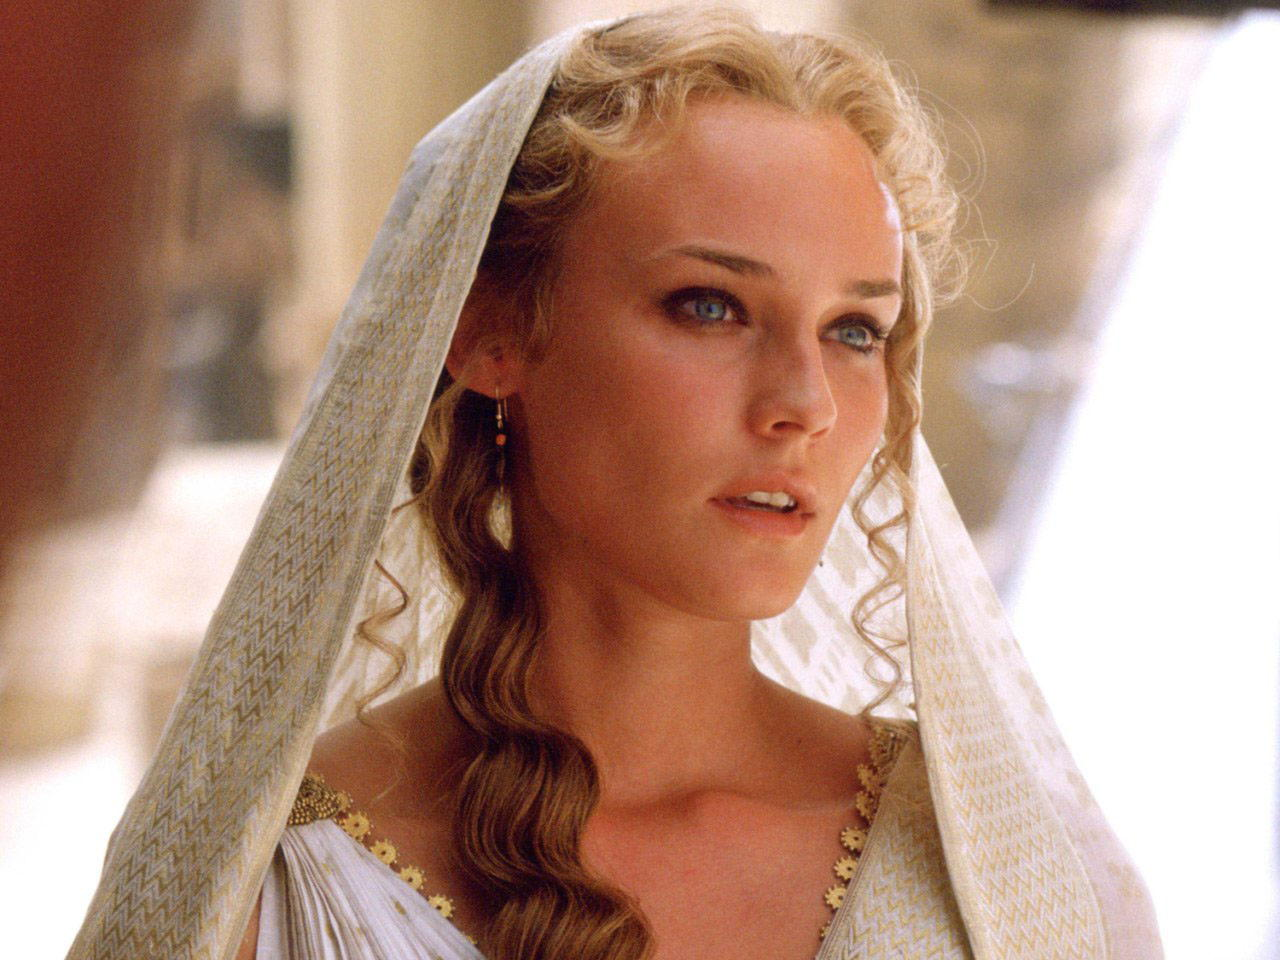 """DIANE KRUGER as 'Helen' in Warner Bros. Pictures' epic action adventure """"Troy,"""" starring Brad Pitt, Eric Bana and Orlando Bloom."""